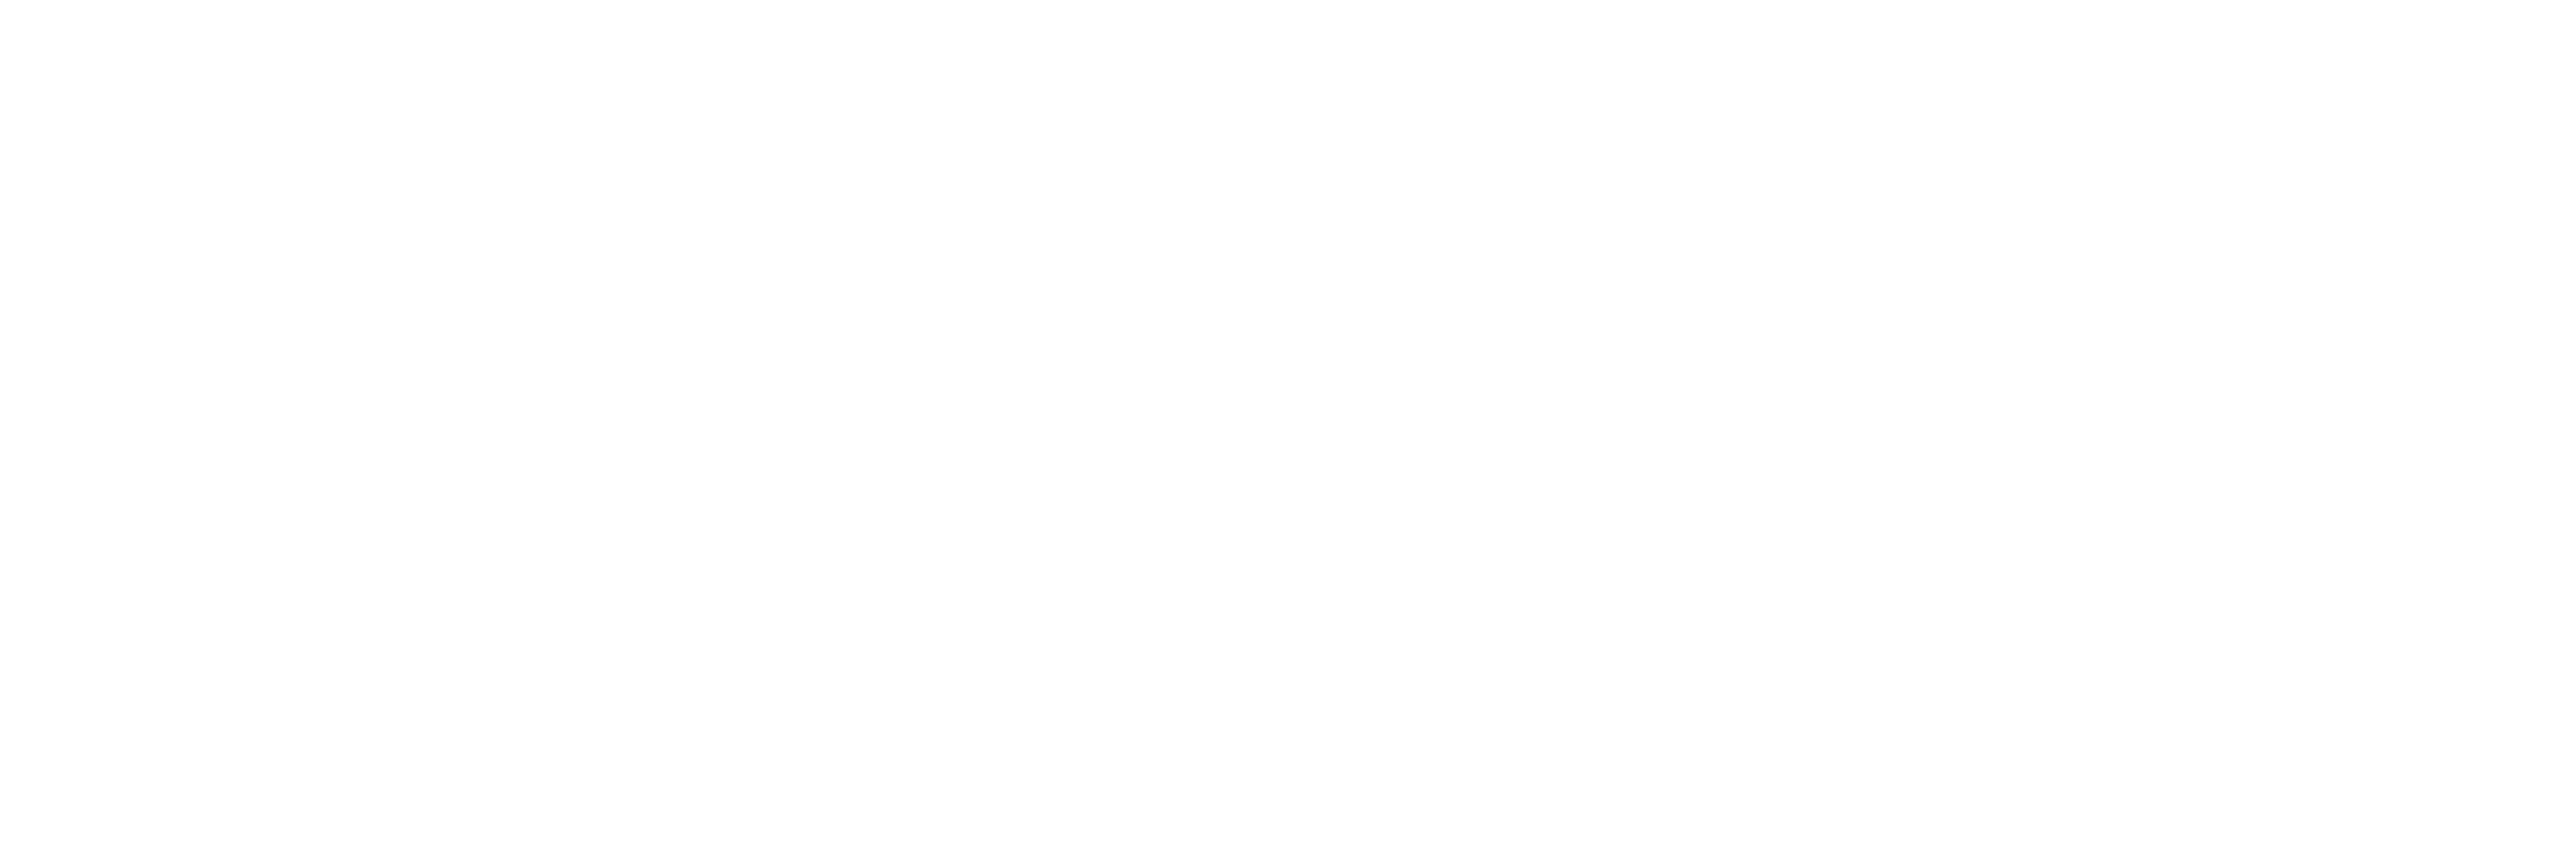 MultiGaming Store